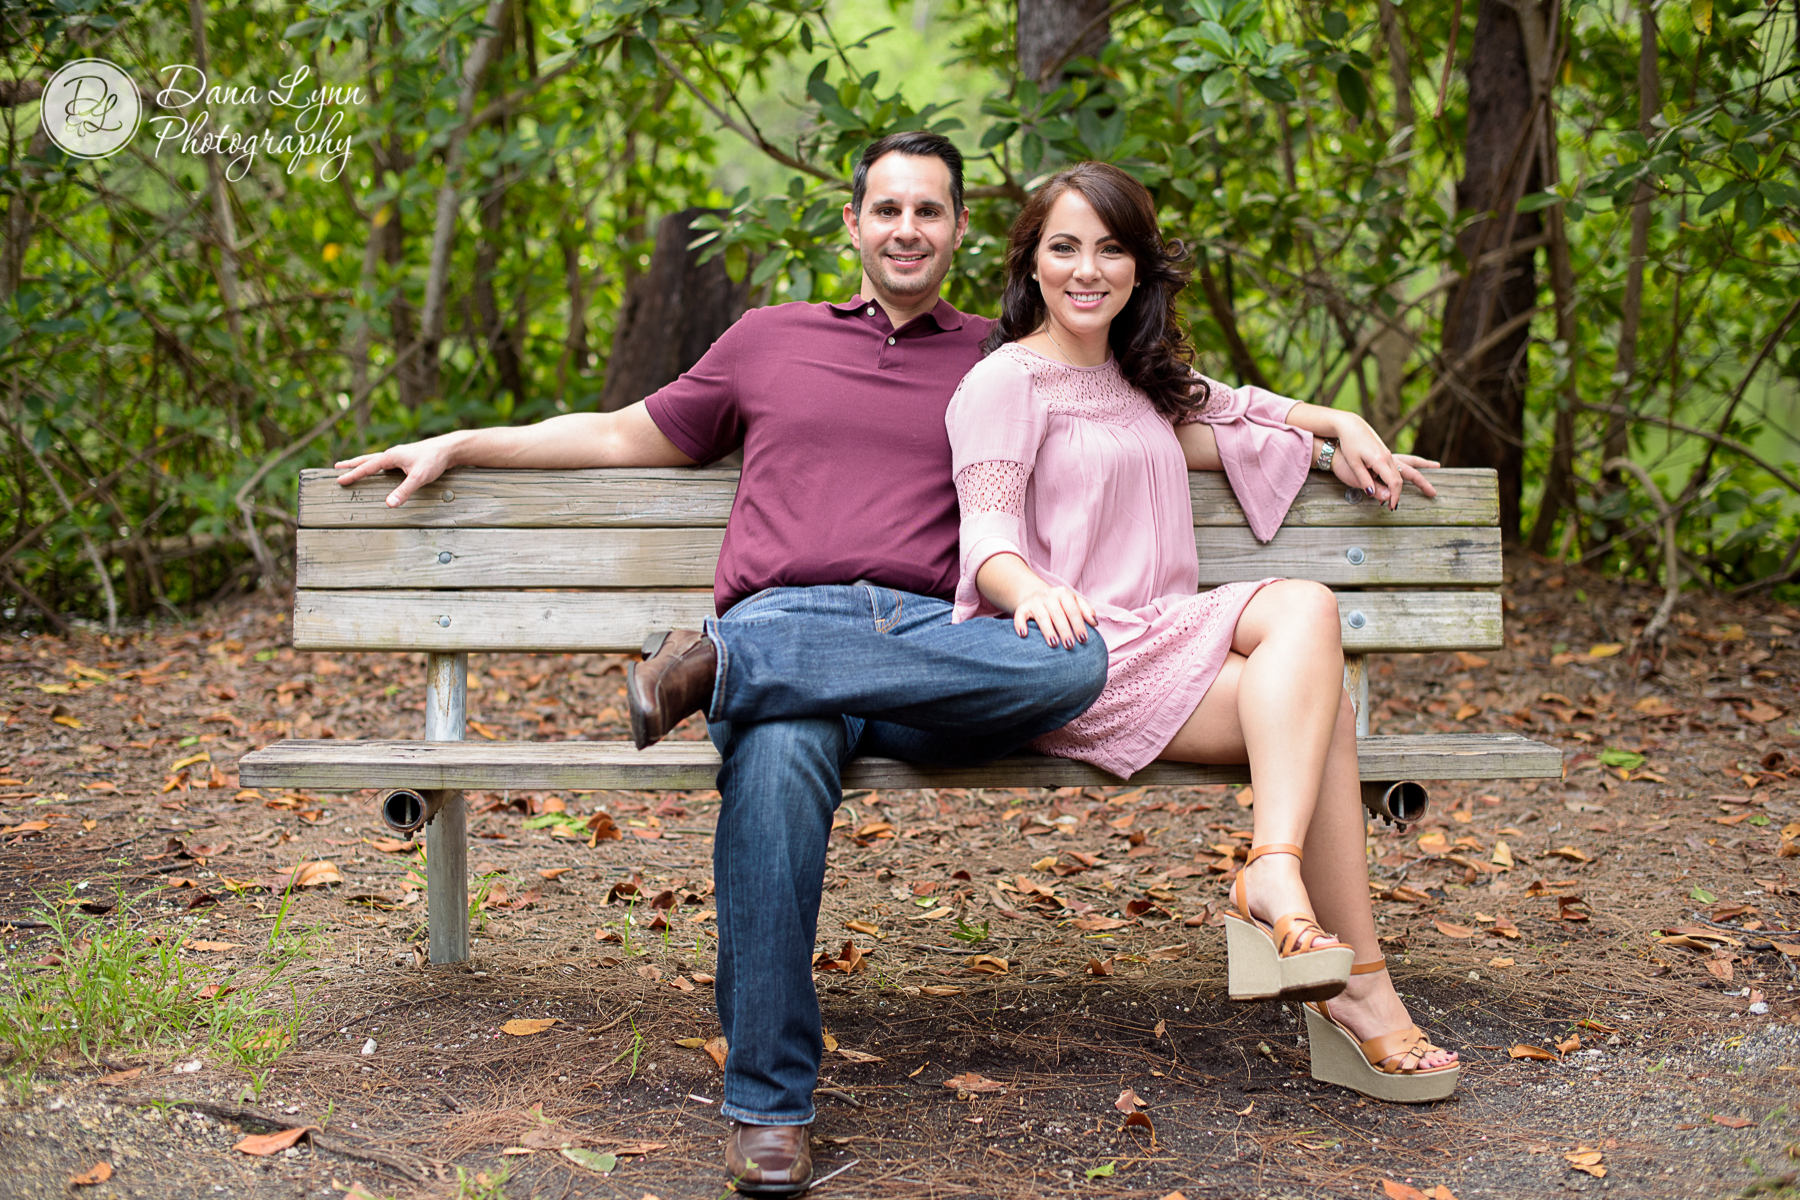 Greynolds Park Engagement Photography